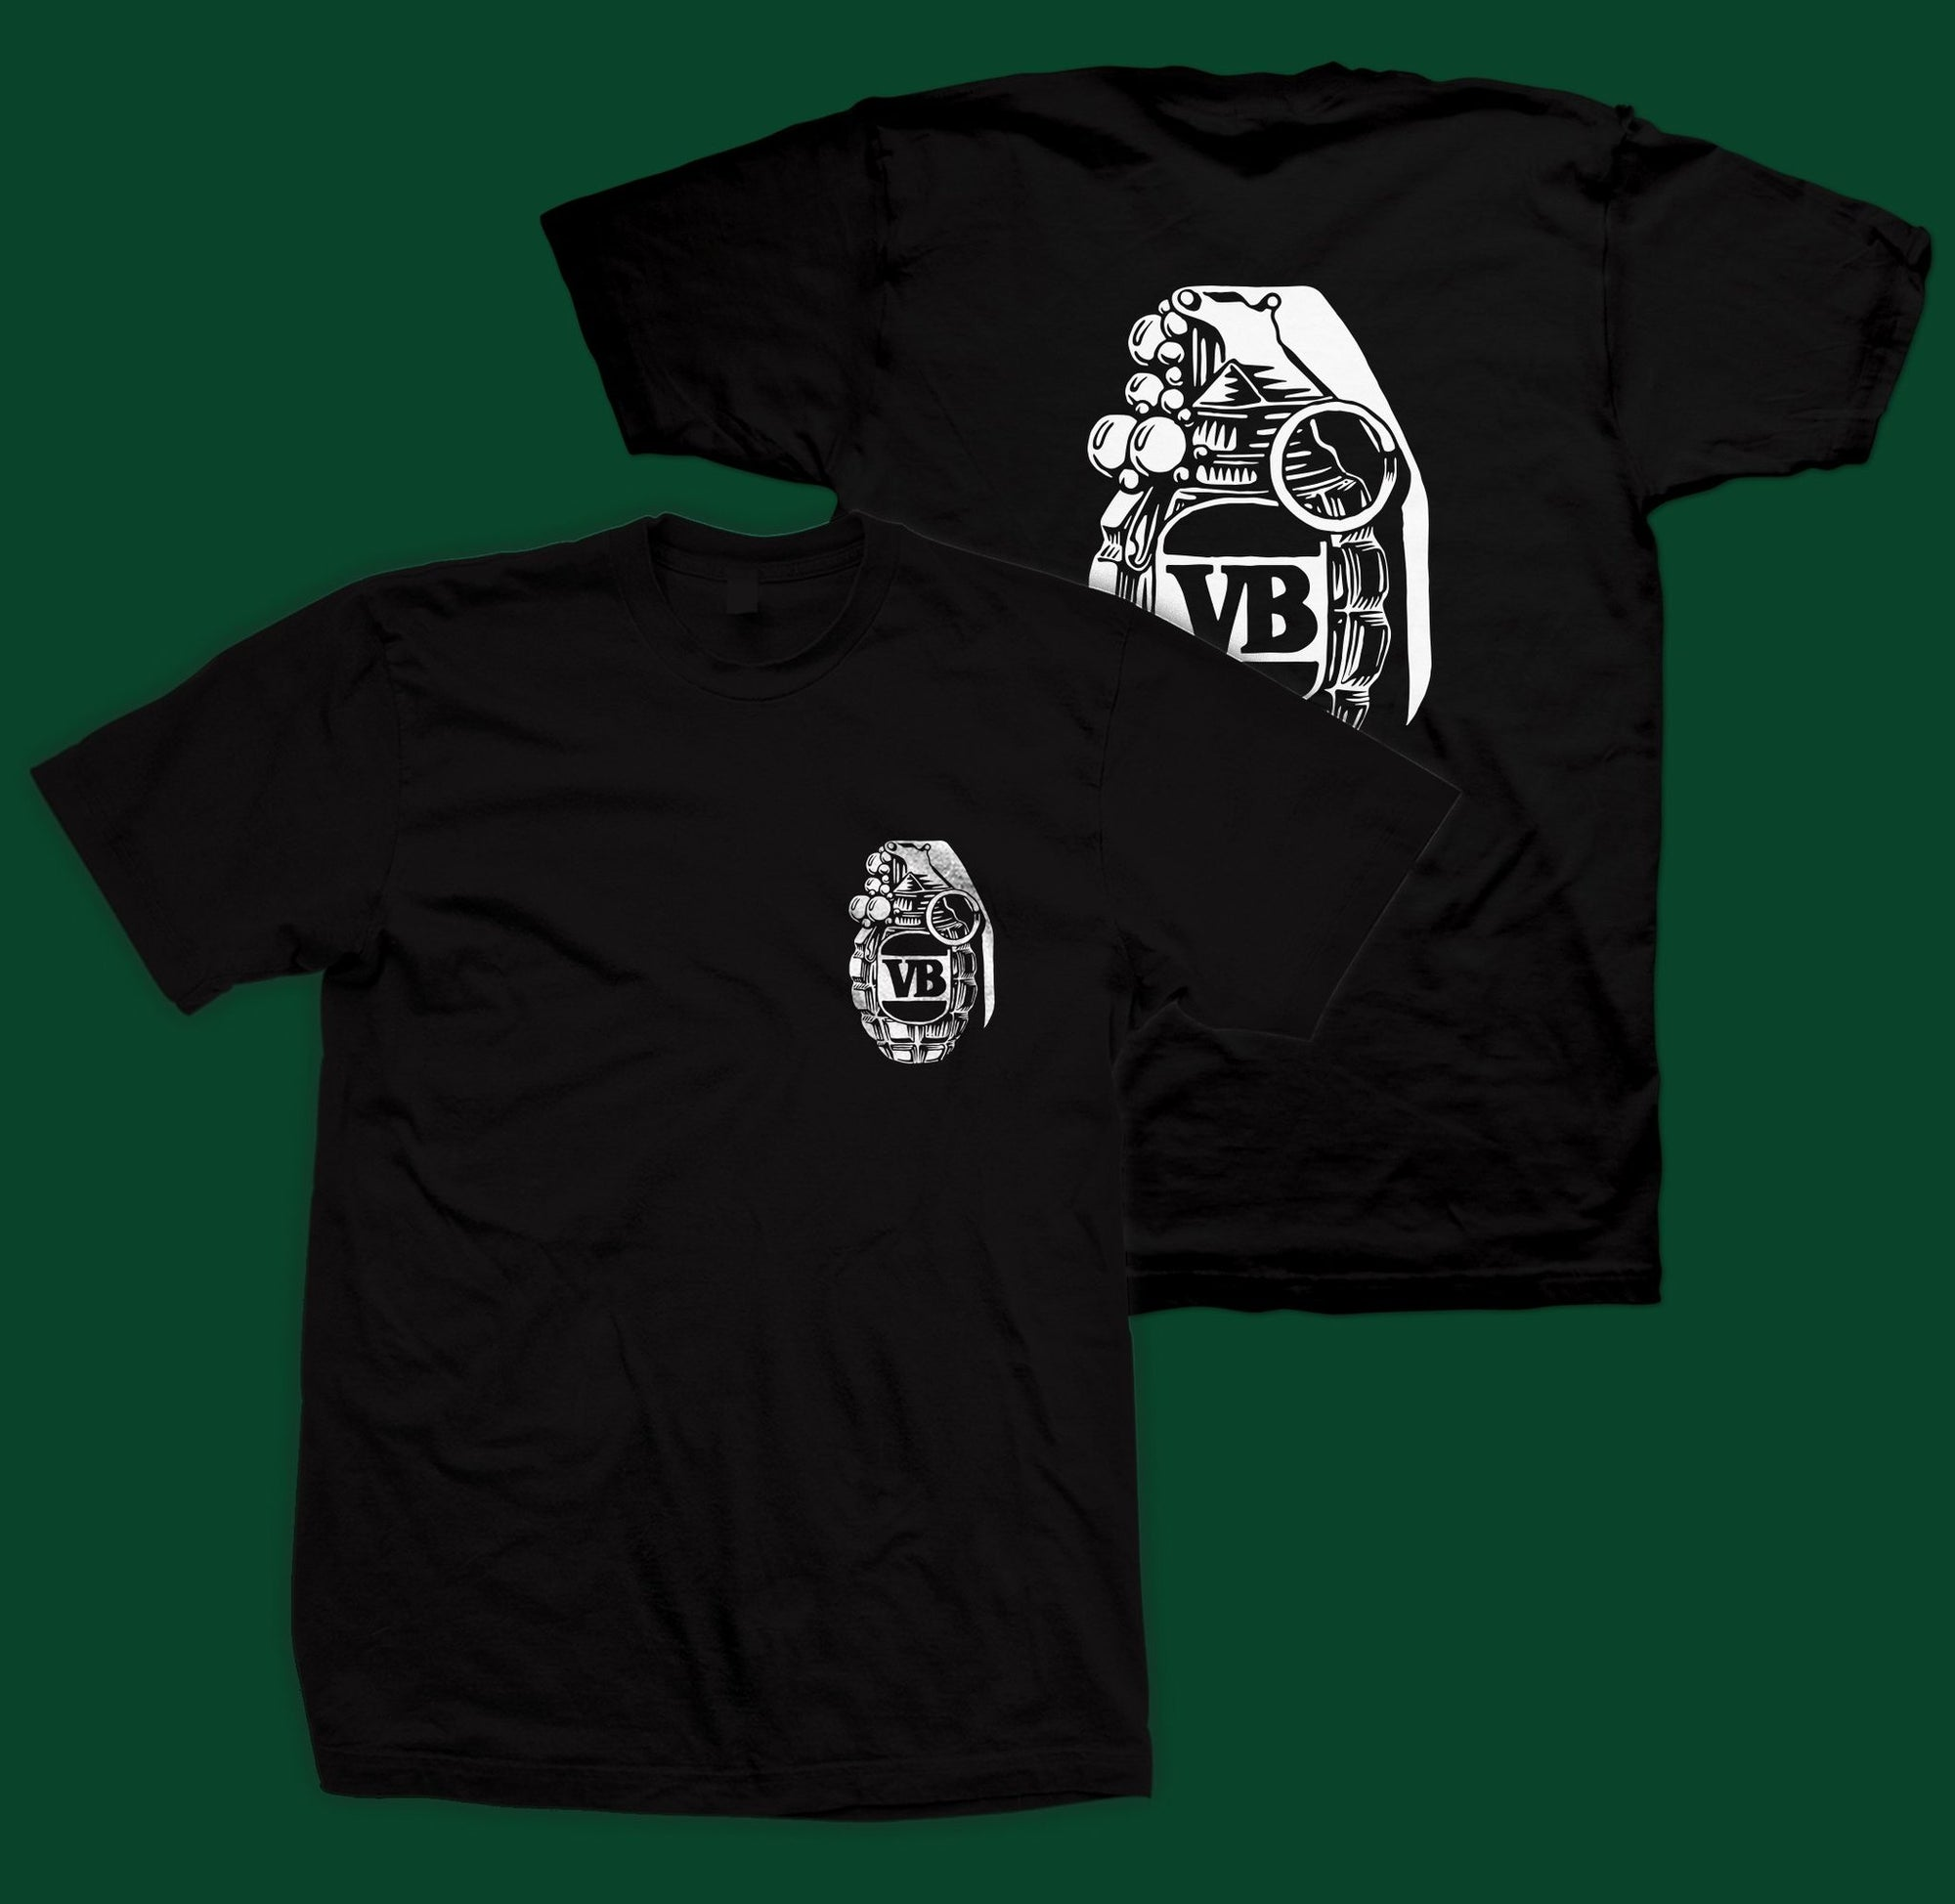 Victor Bravos Green Grenade T-Shirt - White on Black SP-ApparelTees-Mens Victor Bravo's